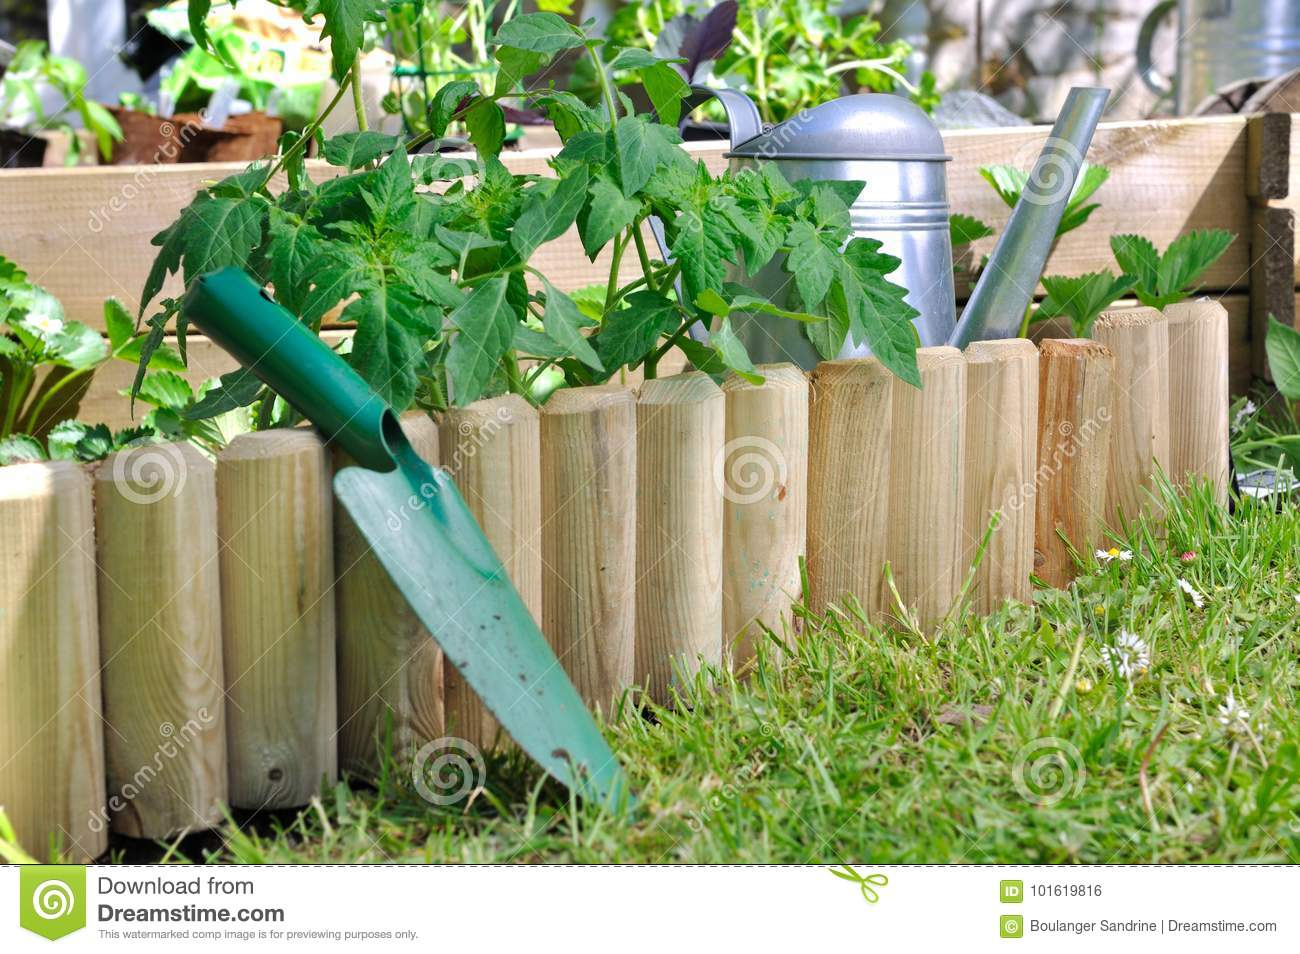 Download Plantation In Vegetable Patch Stock Photo   Image Of Planting,  Plants: 101619816